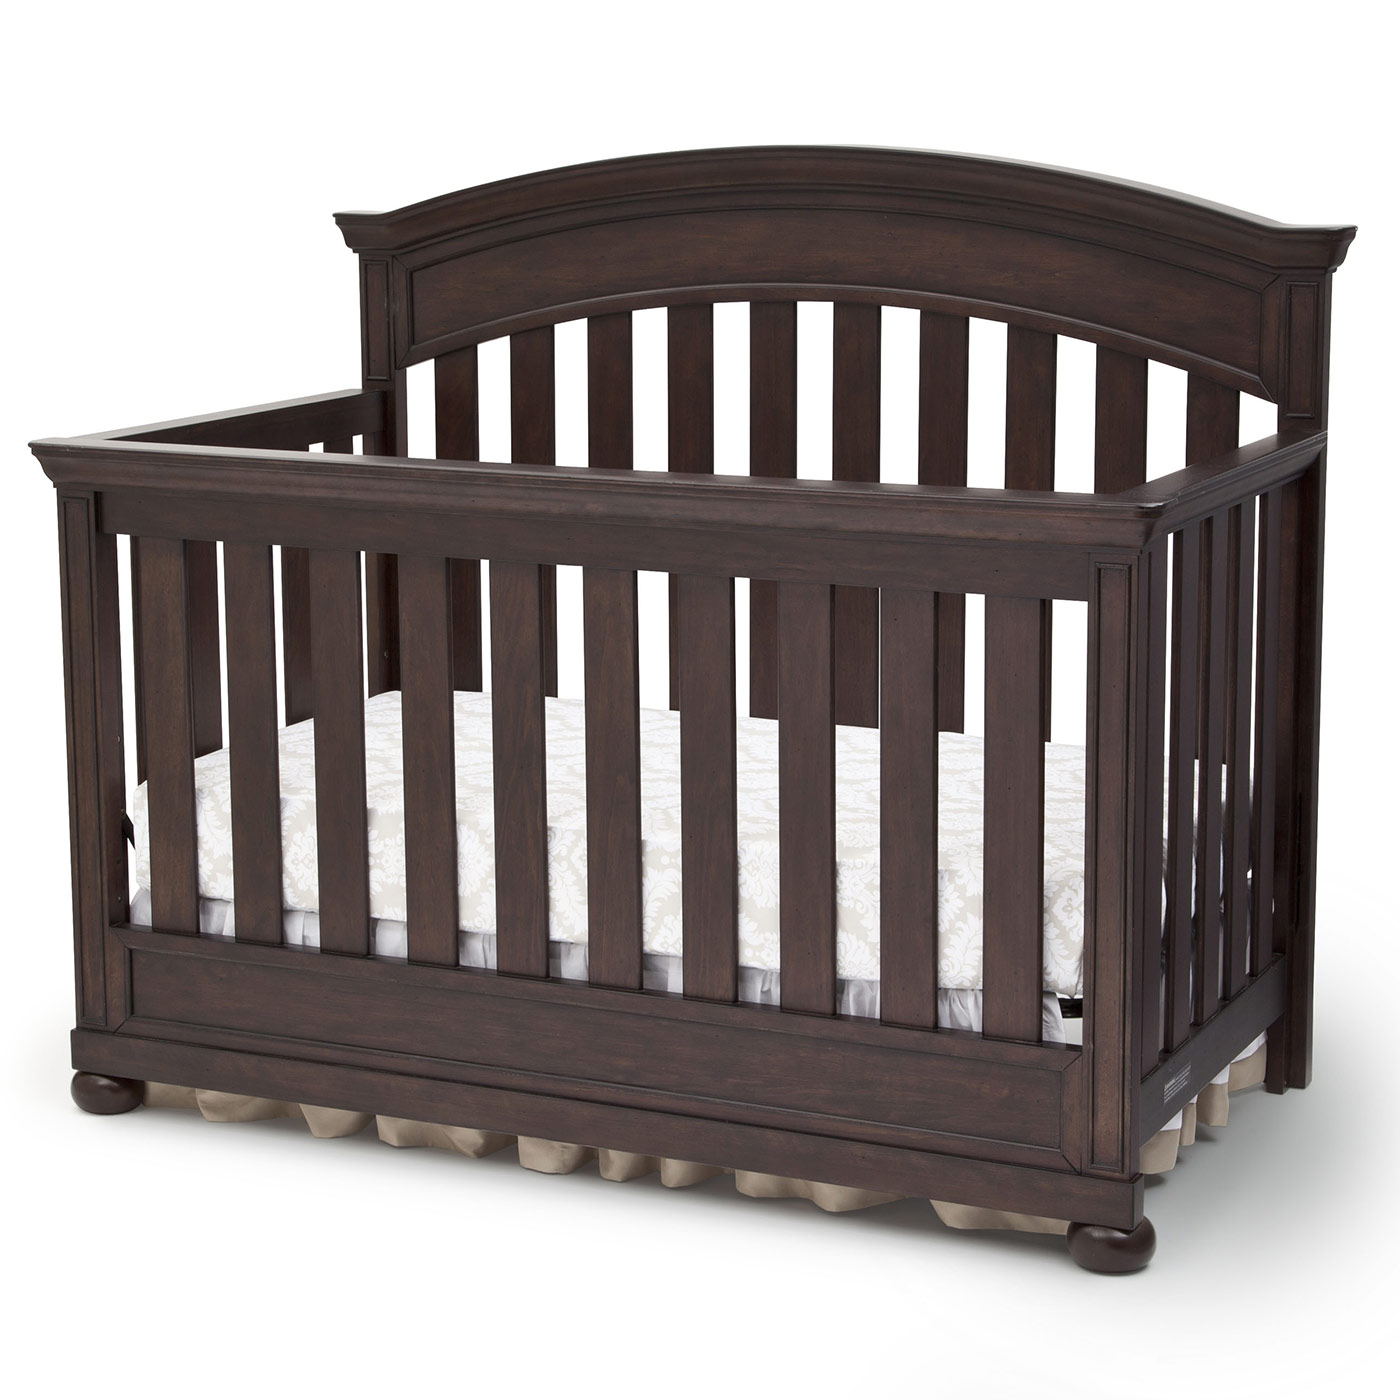 simmons nursery furniture. Simmons Nursery Furniture P